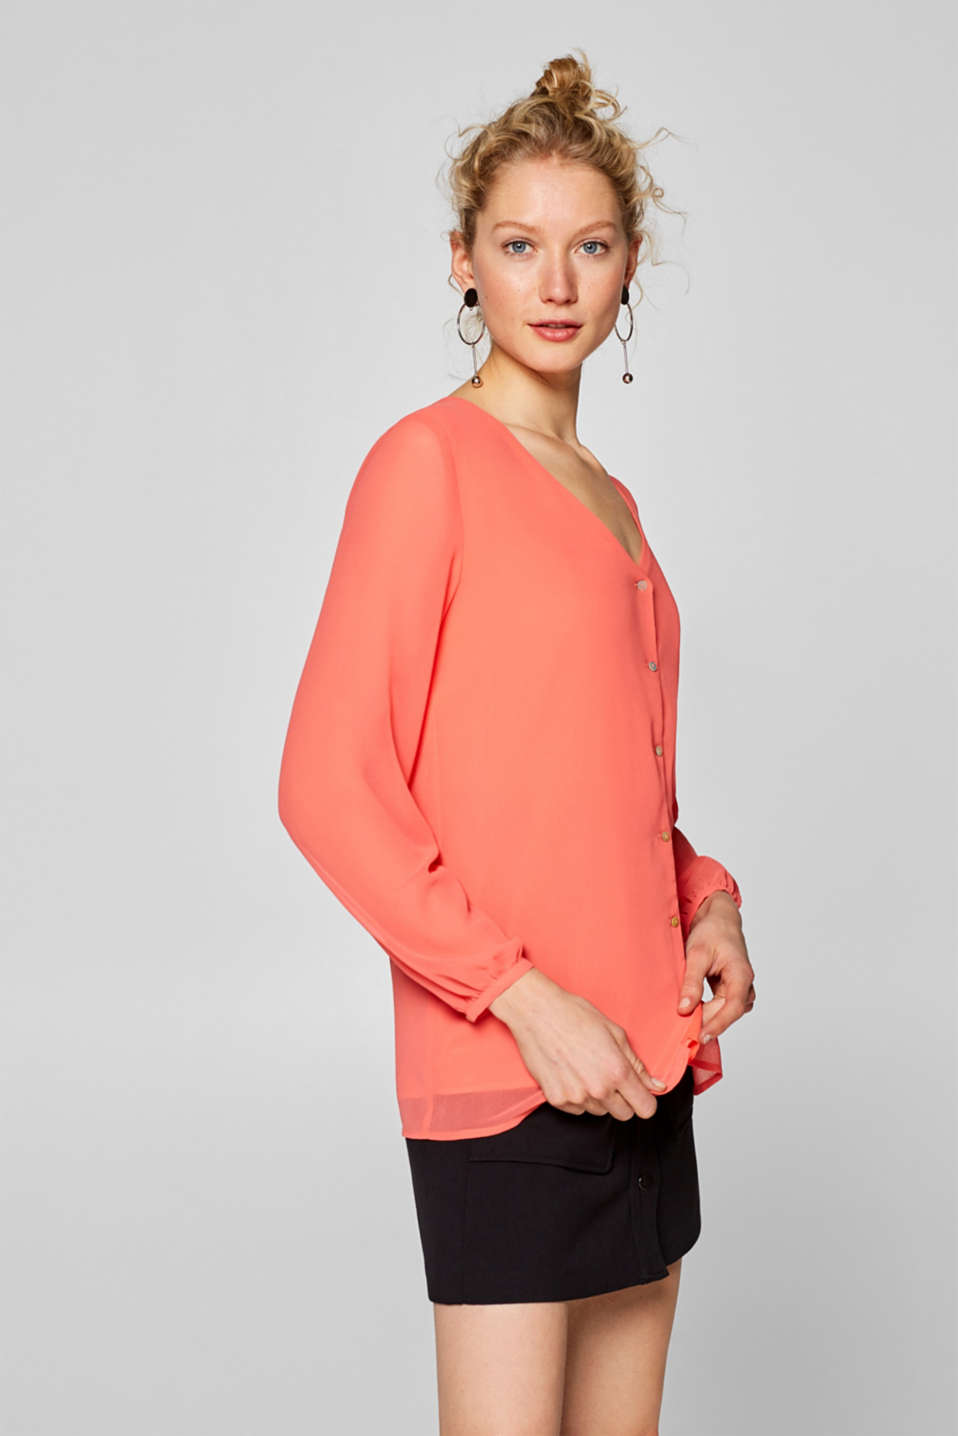 Esprit - Chiffon blouse with sheer sleeves